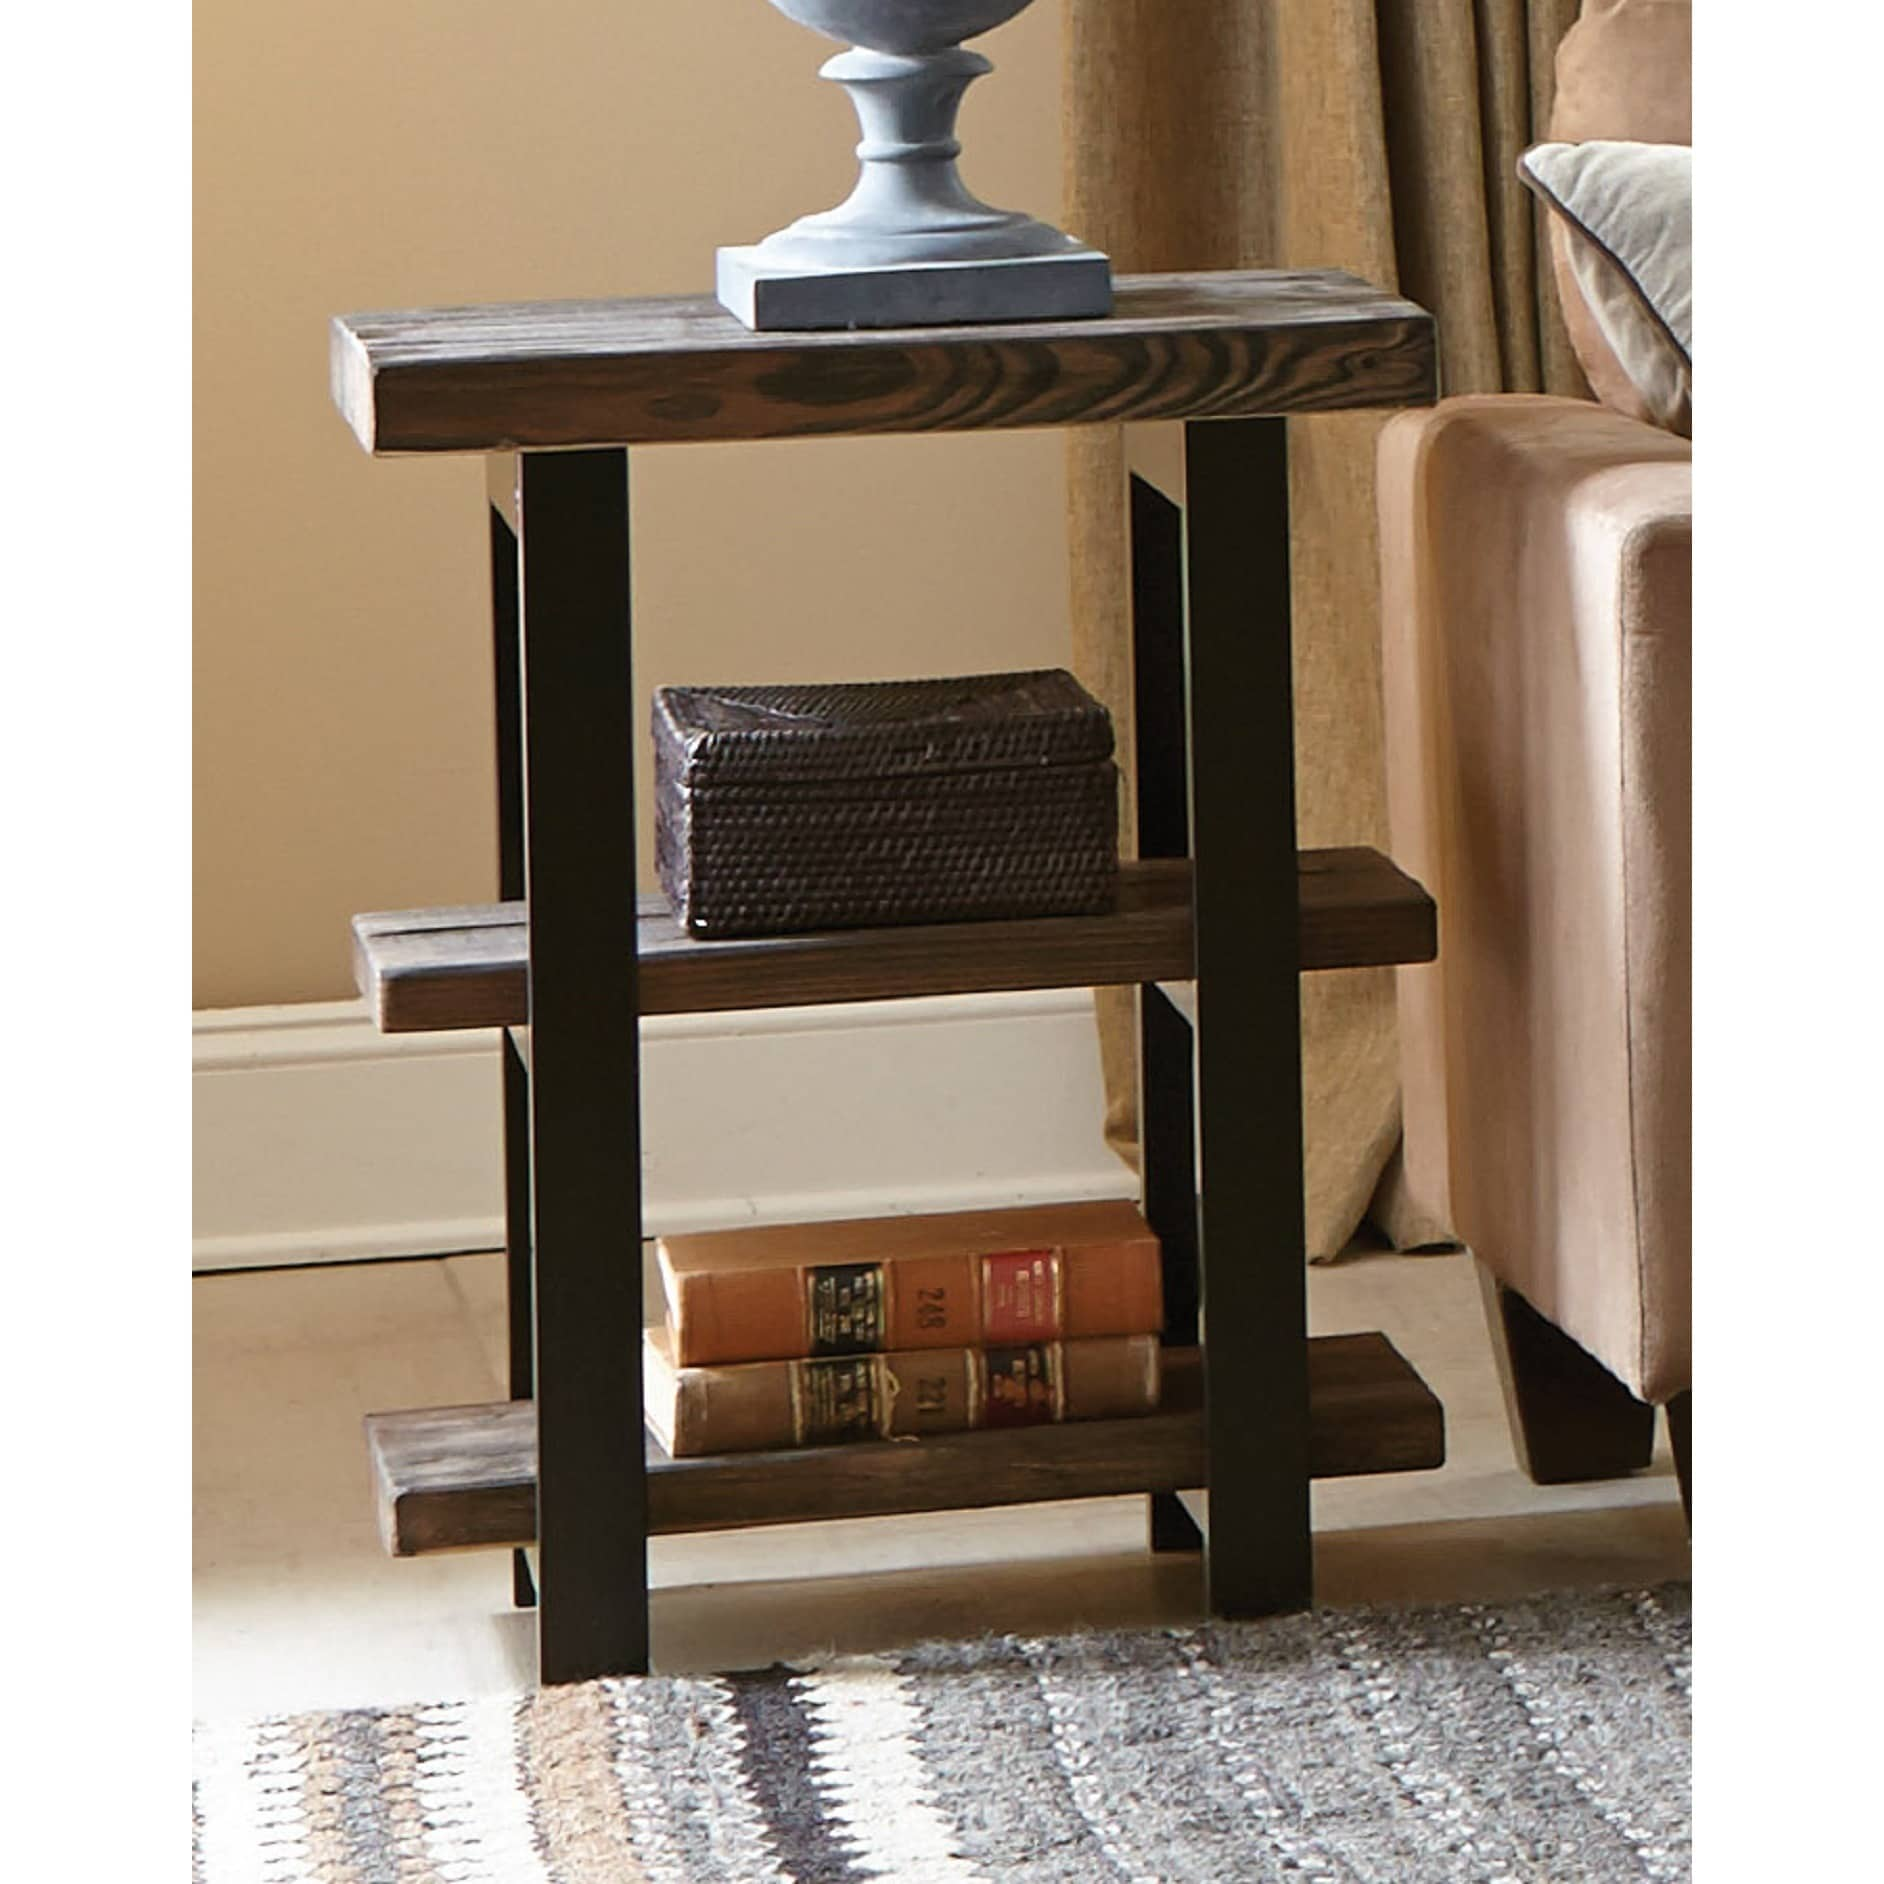 Ordinaire Shop The Gray Barn Michaelis 2 Shelf Rustic End Table   Free Shipping Today    Overstock.com   20306438